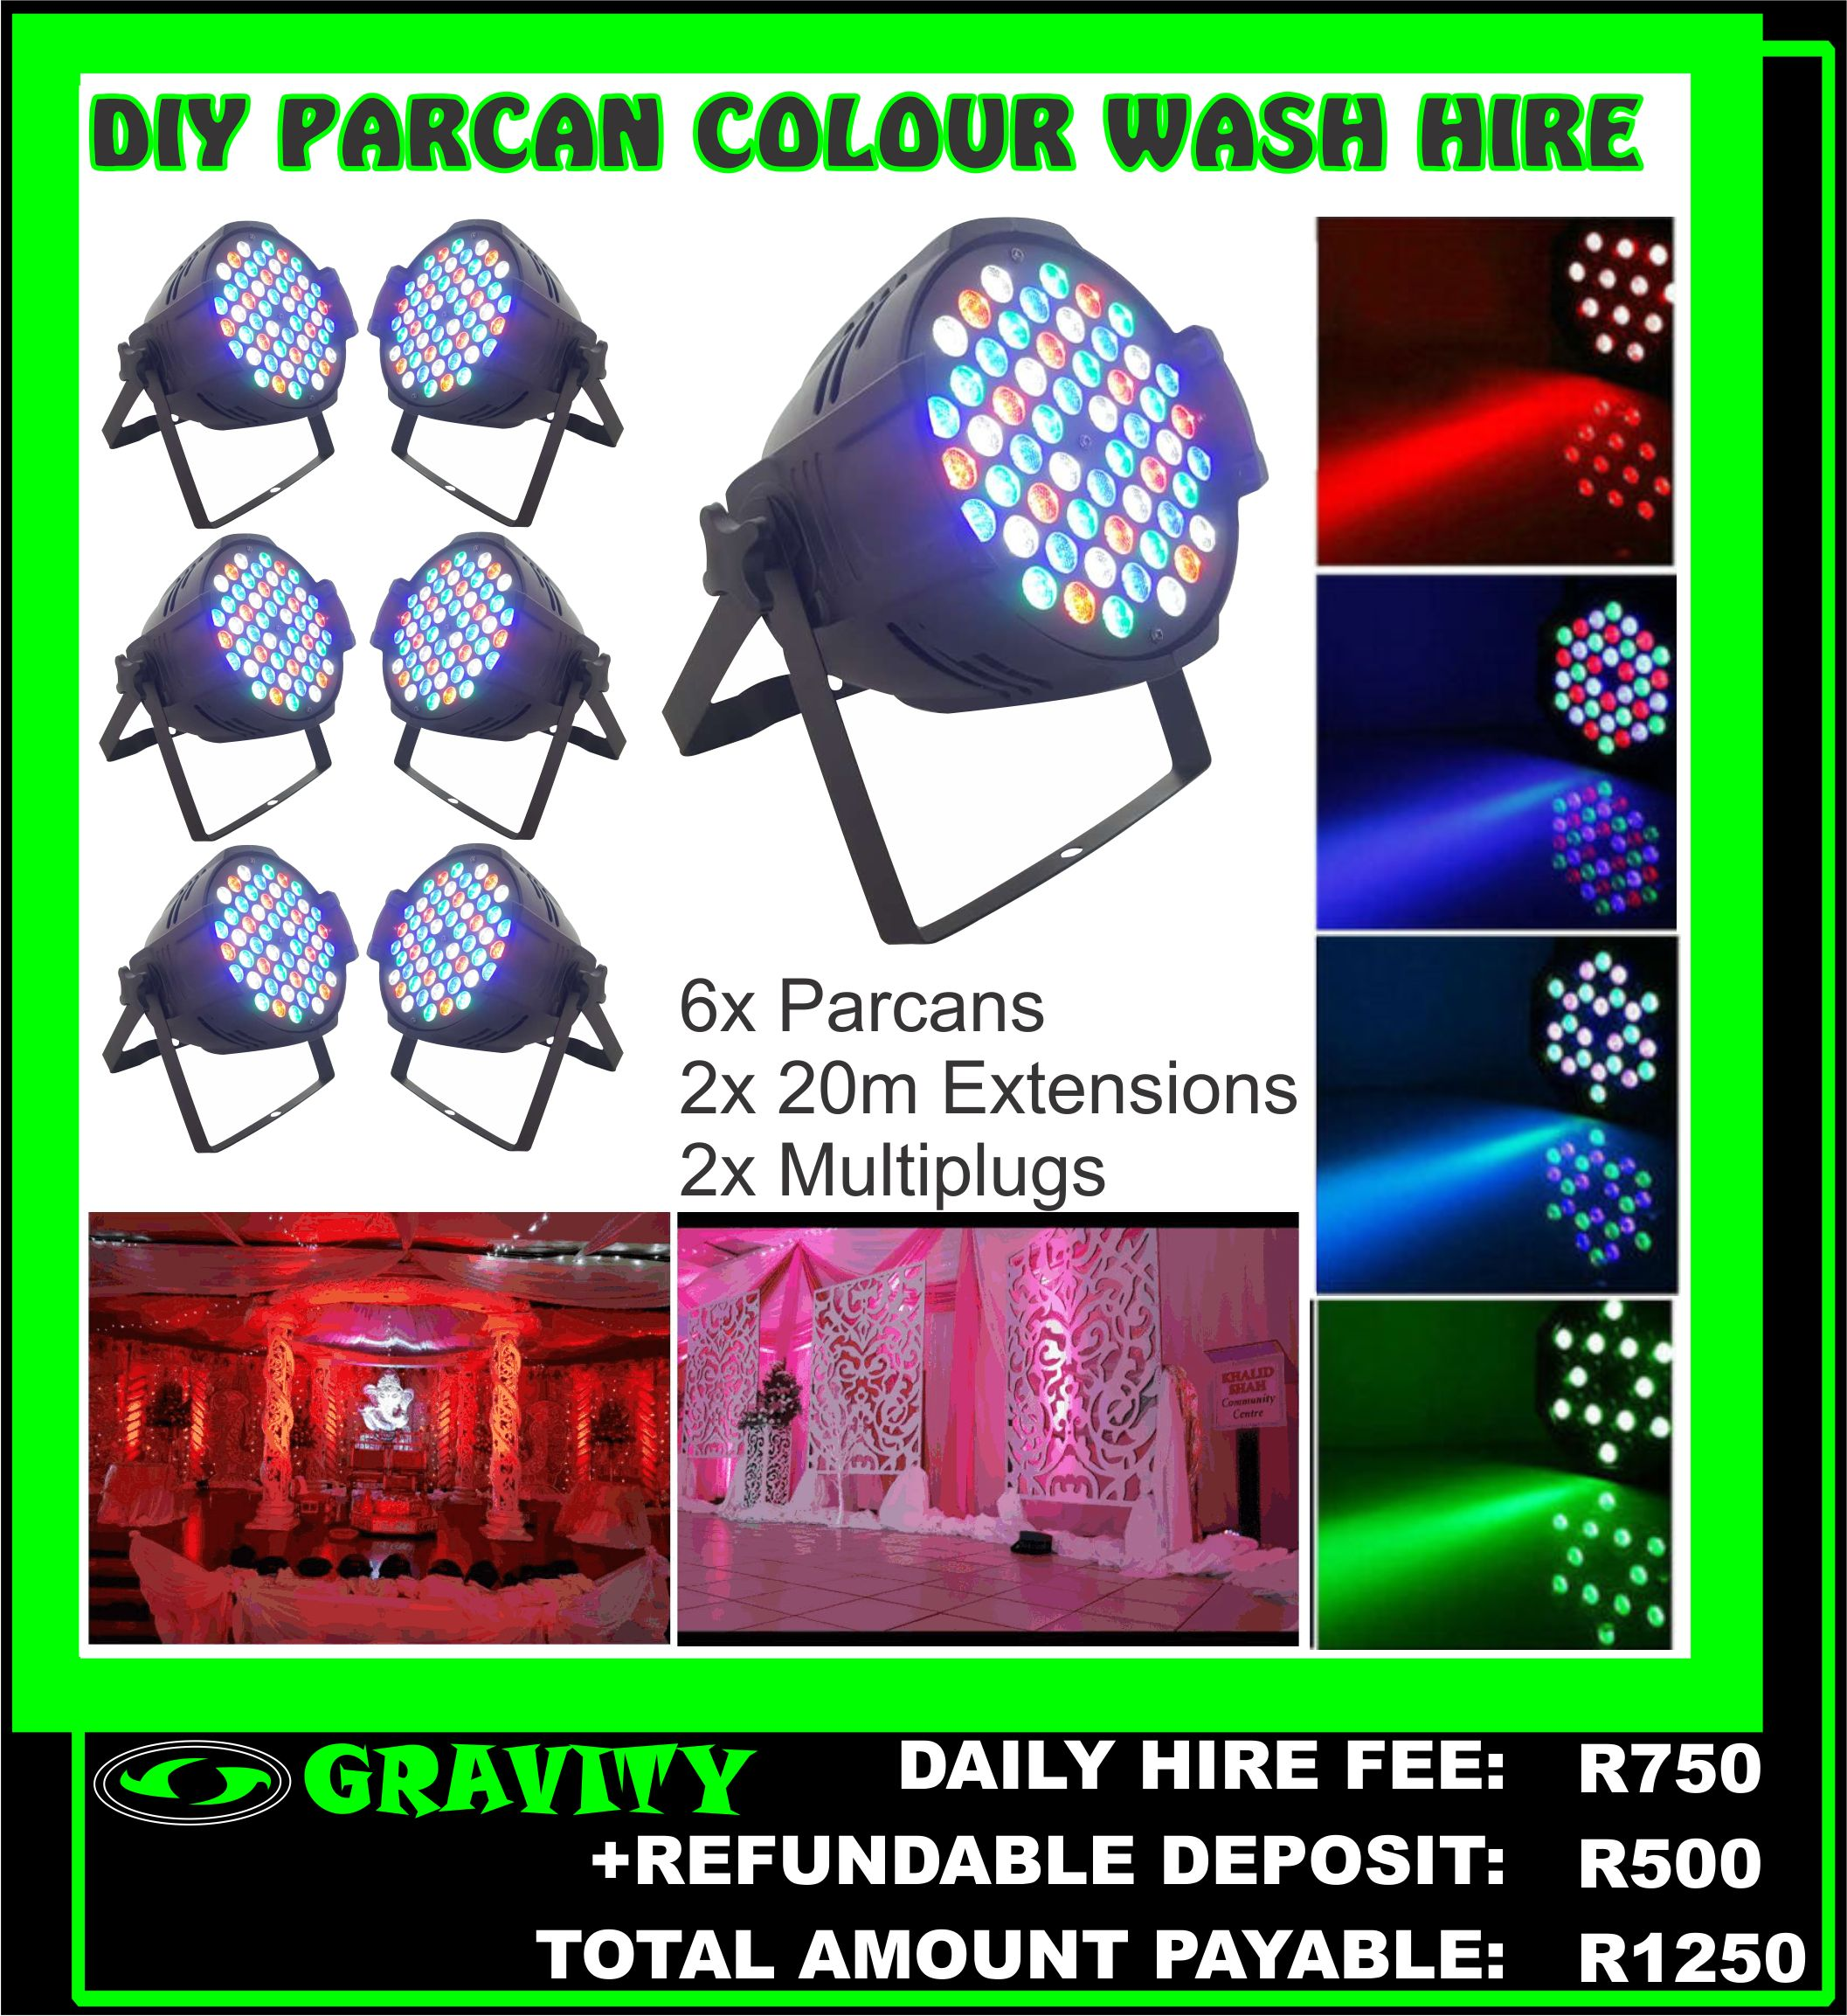 COLOUR WASH YOUR FUNCTION VENUE  COLOUR WASH THE VENUE STAGE  COLOUR WASH THE HALL  PACKAGES NOW AVAILABLE AT GRAVITY SOUND & LIGHTING WAREHOUSE DURBAN  YOU CHOOSE THE COLOUR WASH ACCORDING TO YOUR PARTY THEME..CONTACT US TODAY 0315072463